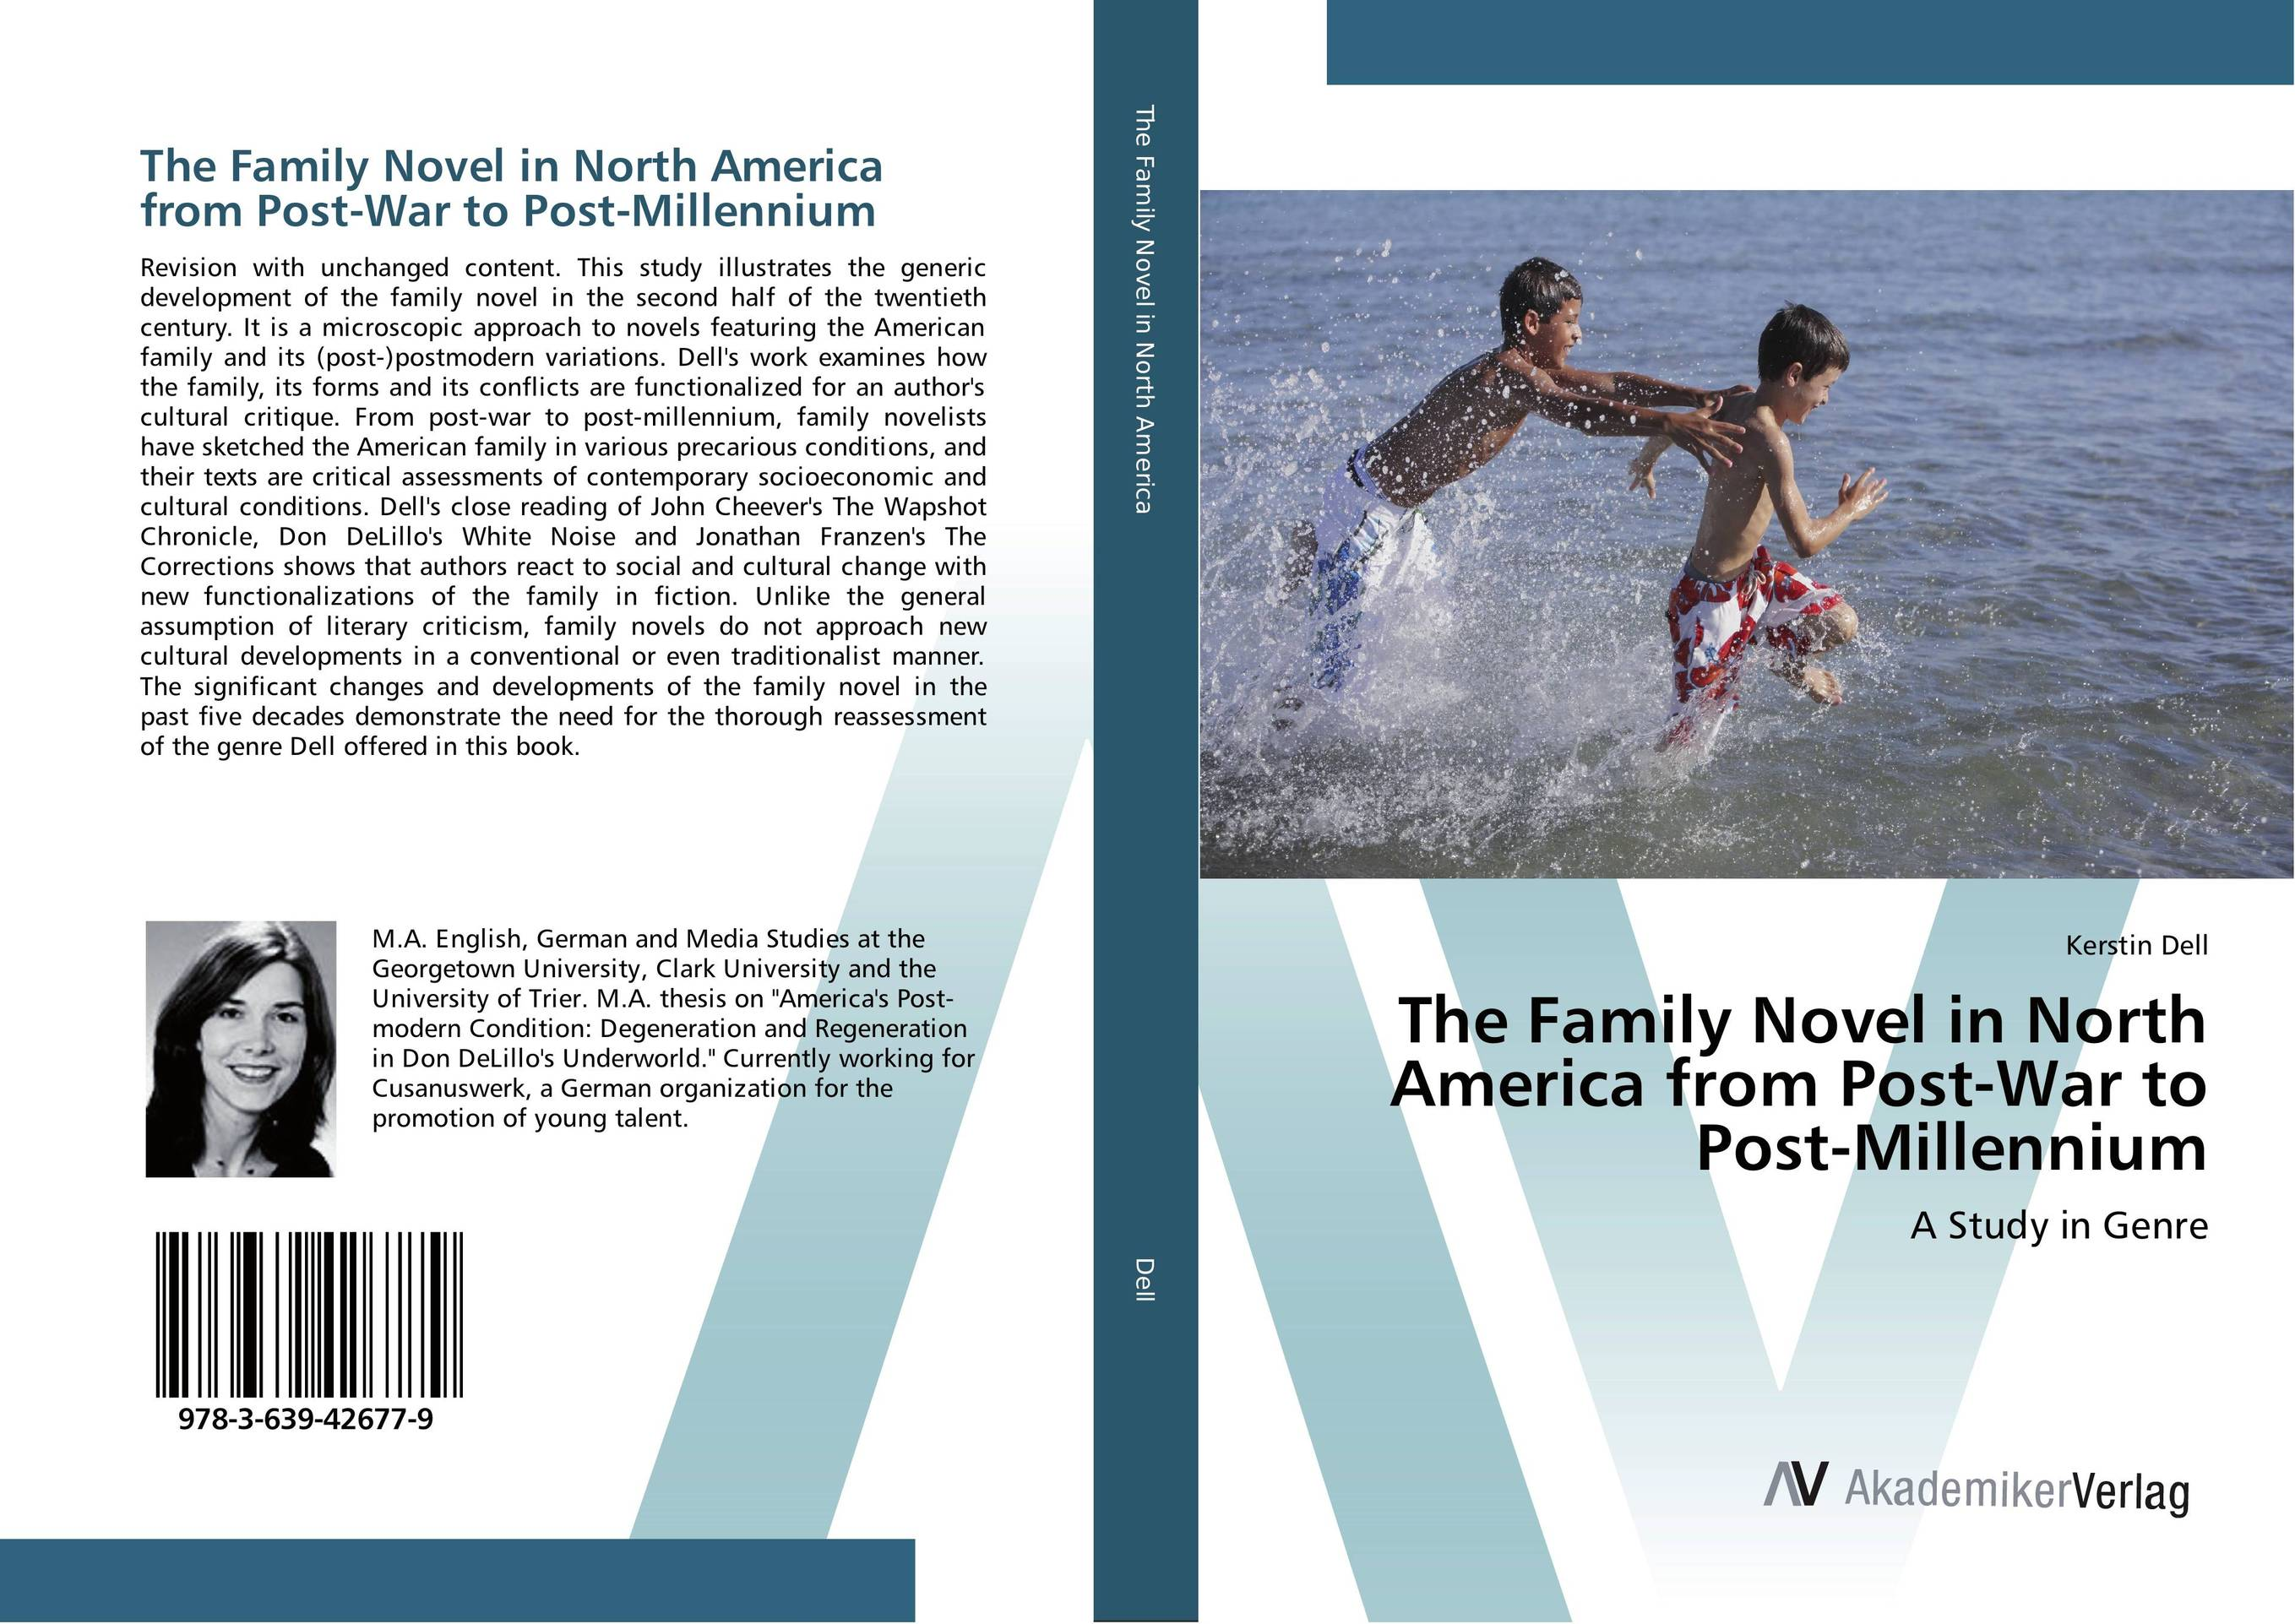 The Family Novel in North America from Post-War to Post-Millennium family caregiving in the new normal